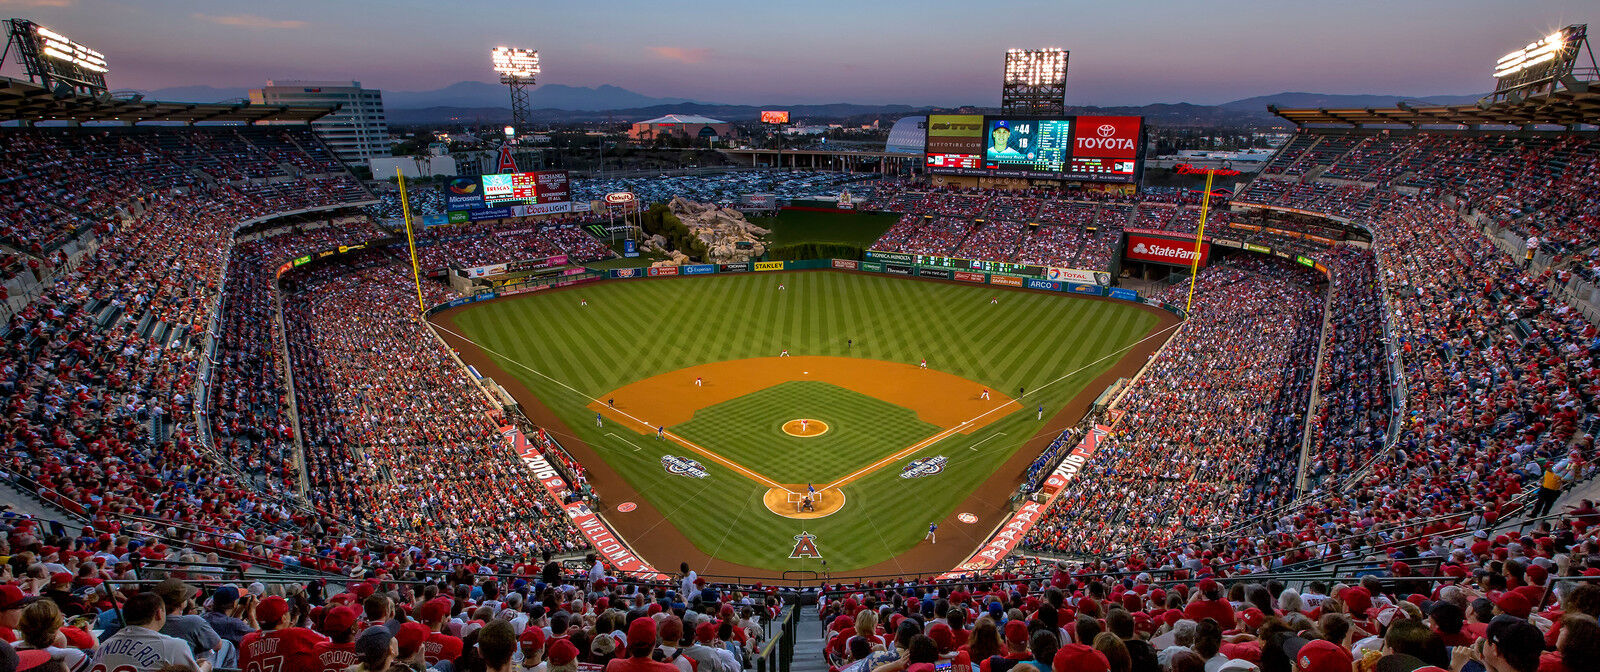 Philadelphia Phillies at Los Angeles Angels Tickets (Trout Socks Giveaway)